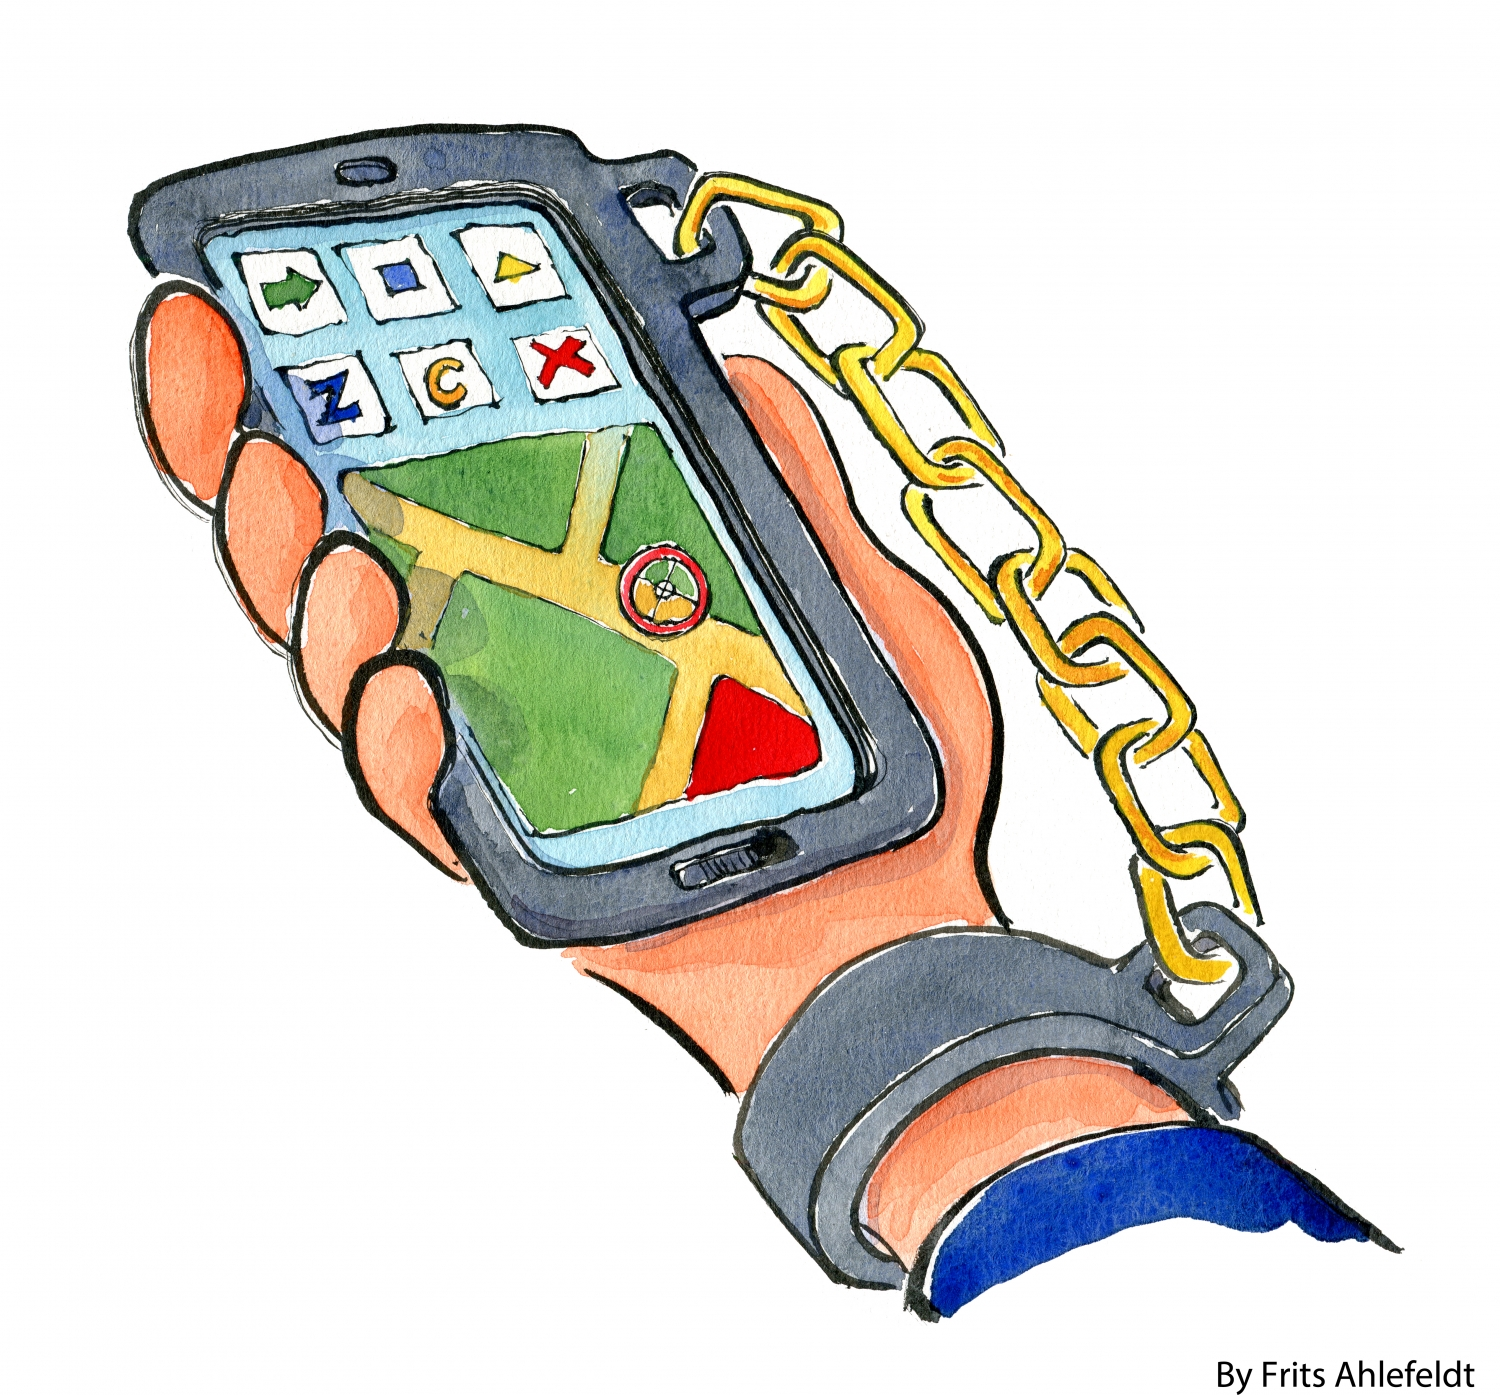 Addiction of cellular gadgets and behavior